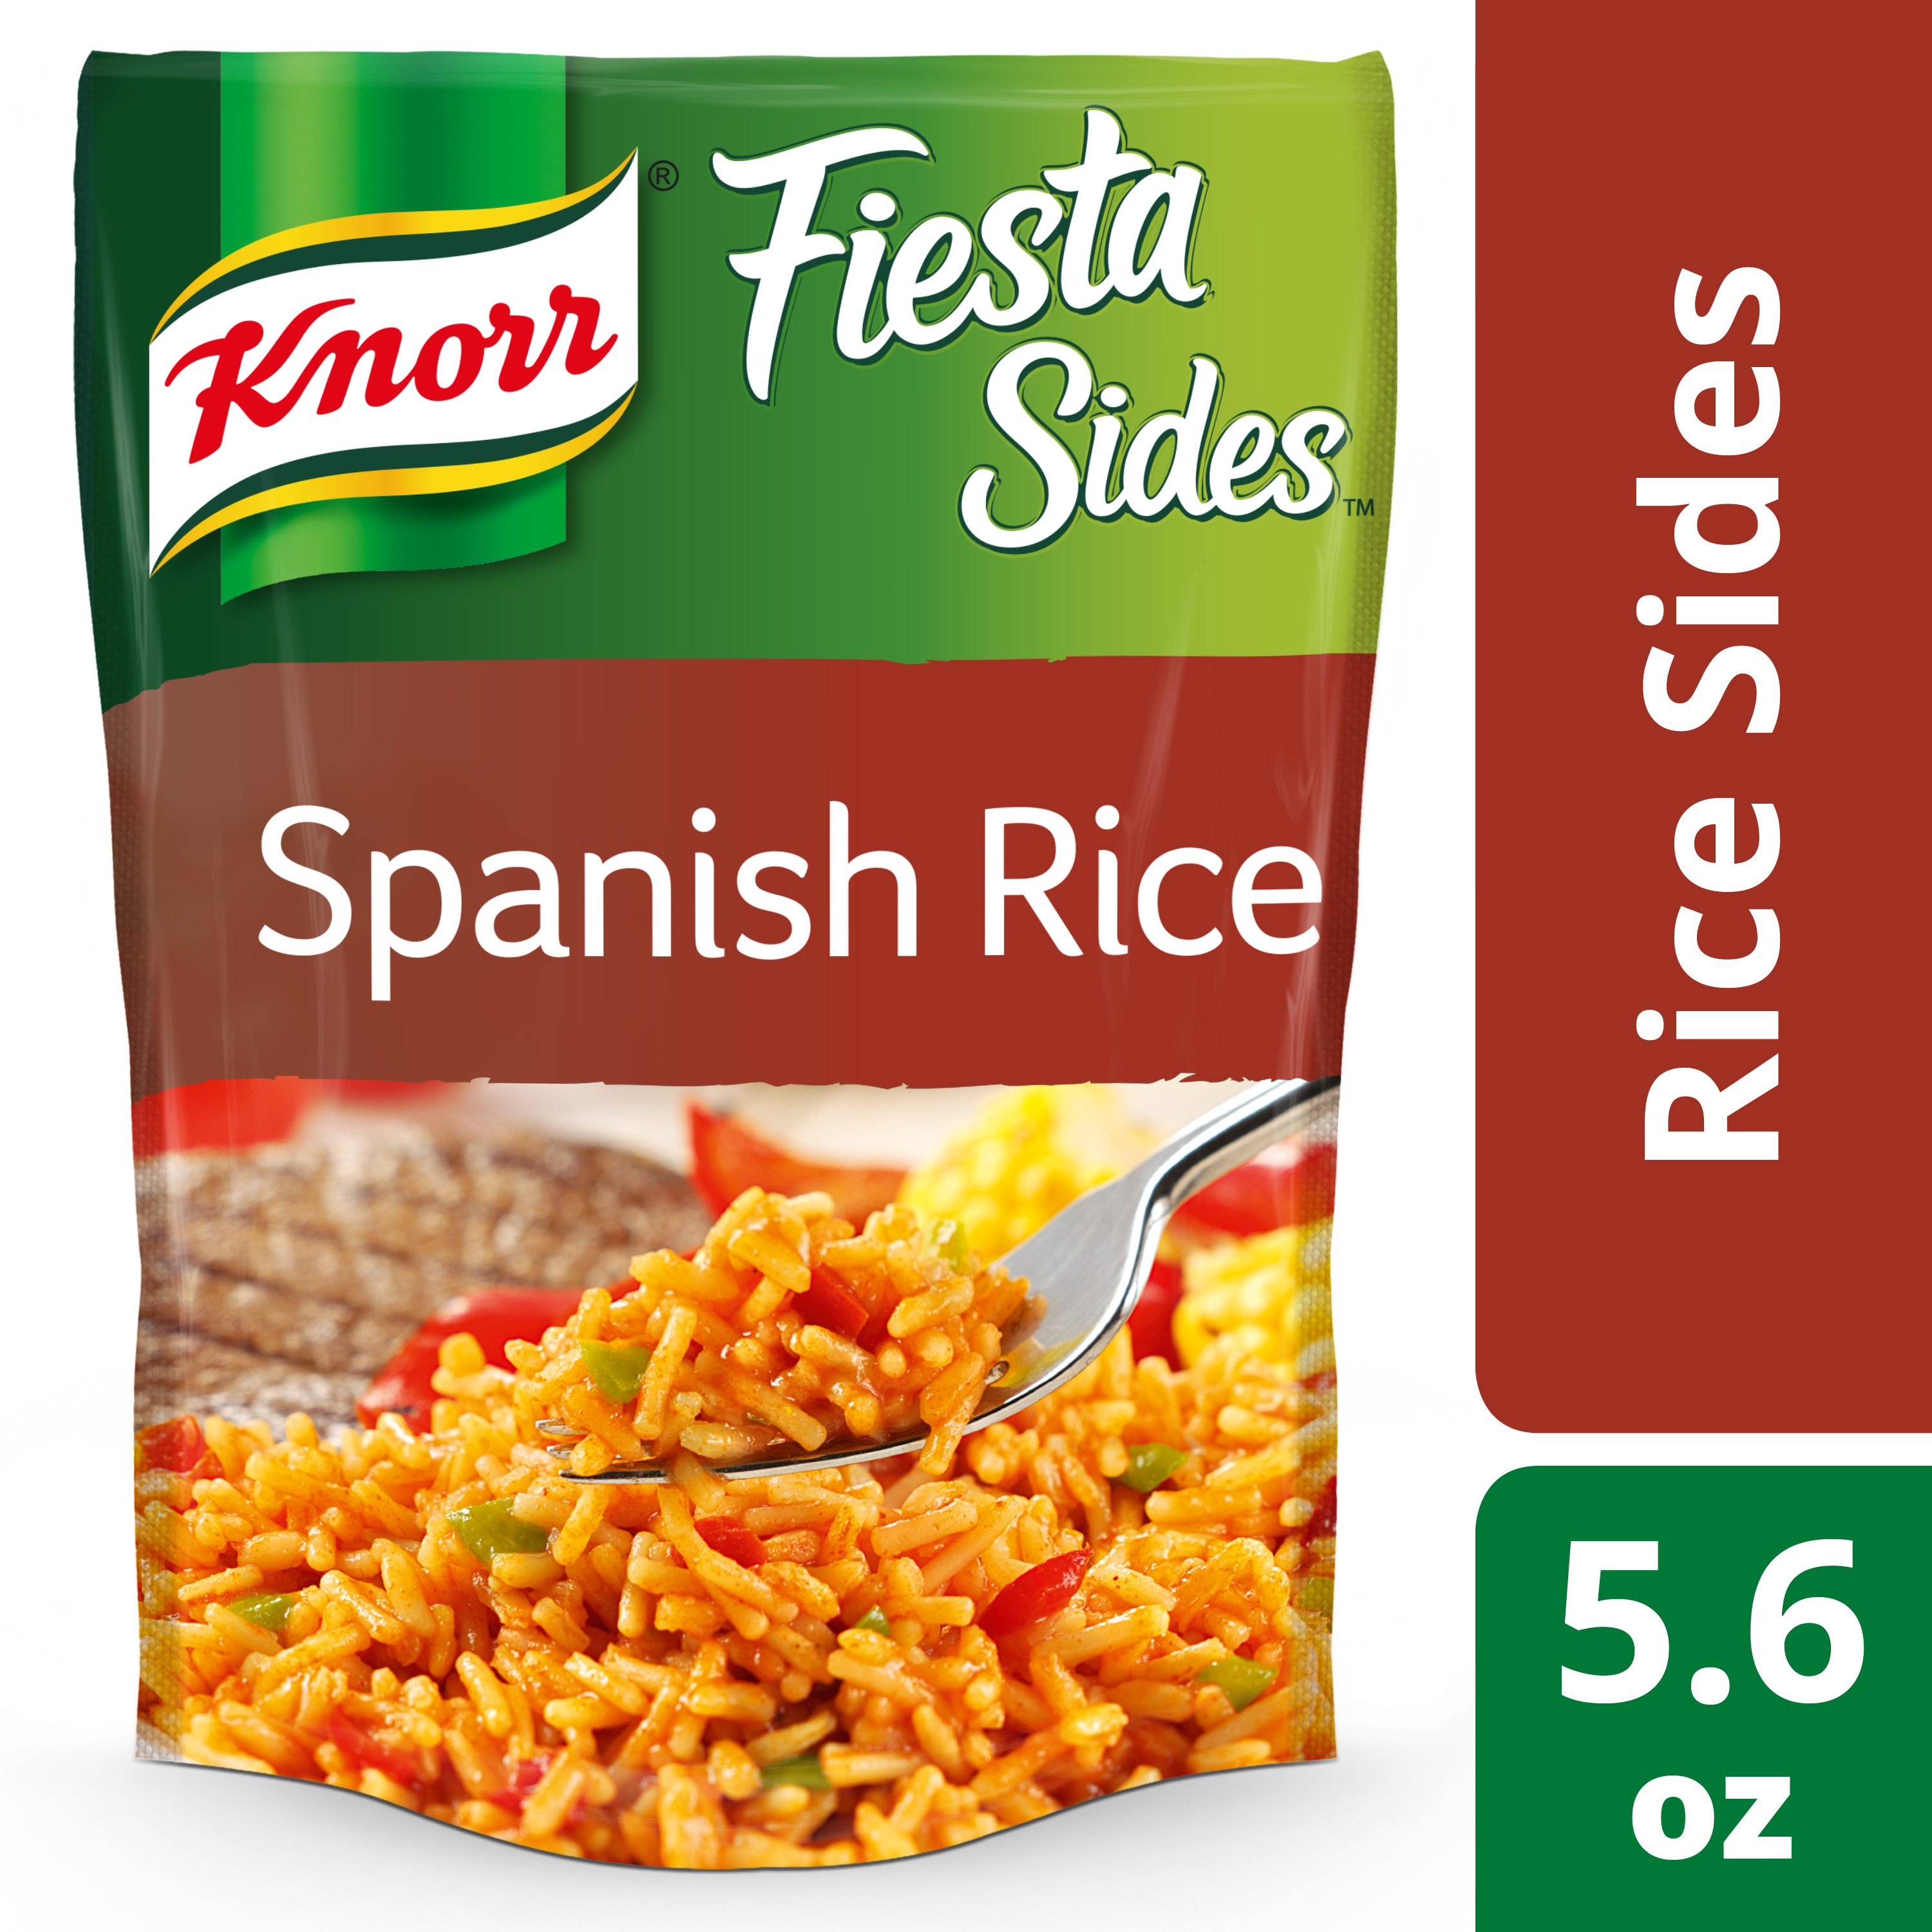 Knorr Fiesta Sides Spanish Rice, 5.6 oz by Unilever